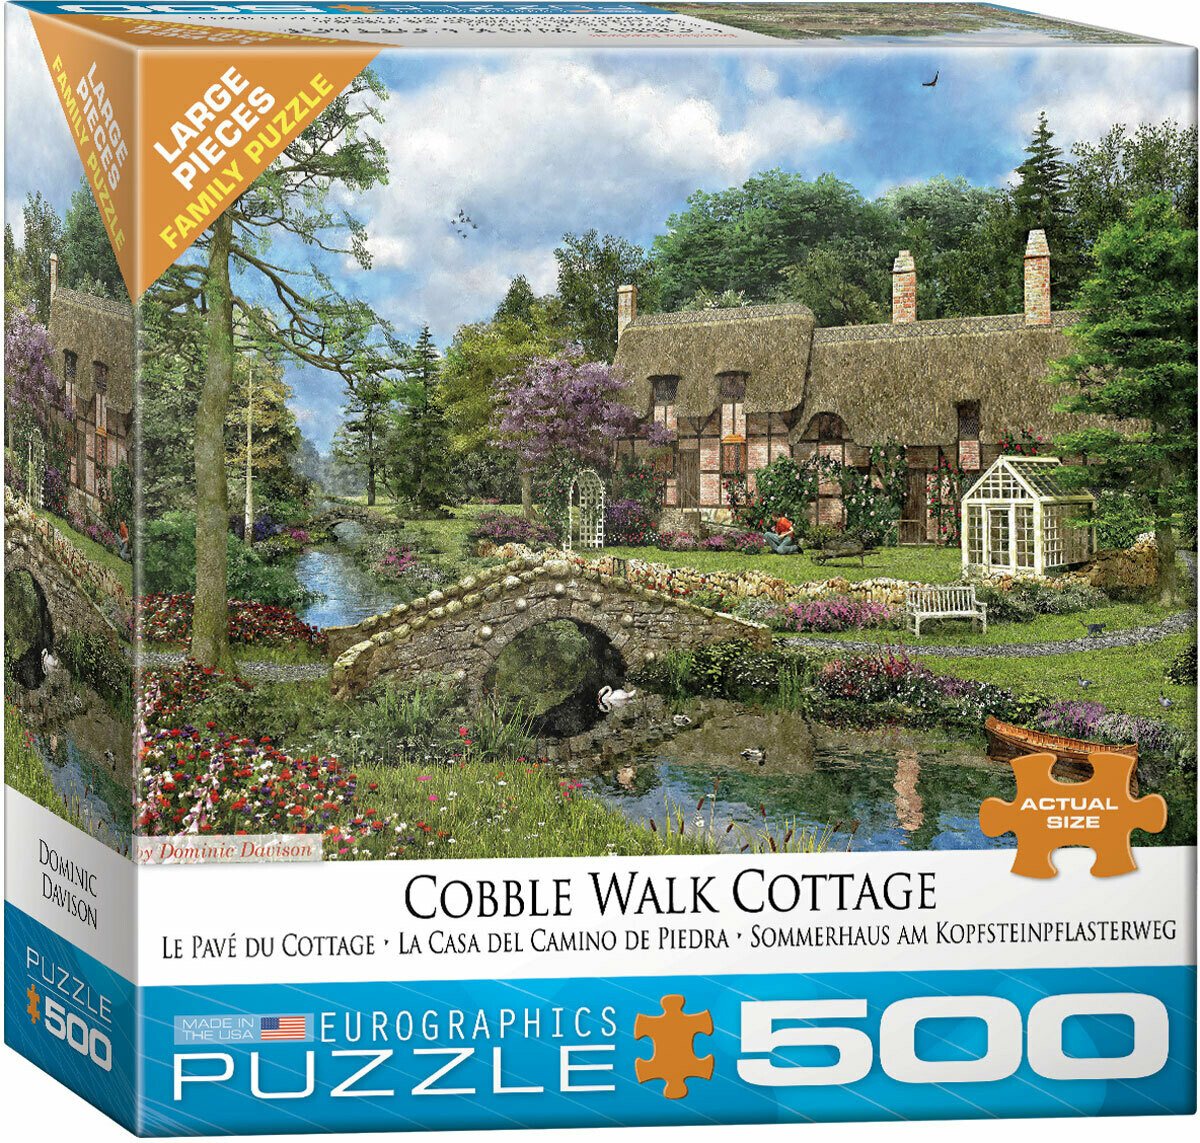 Cobble Walk Cottage